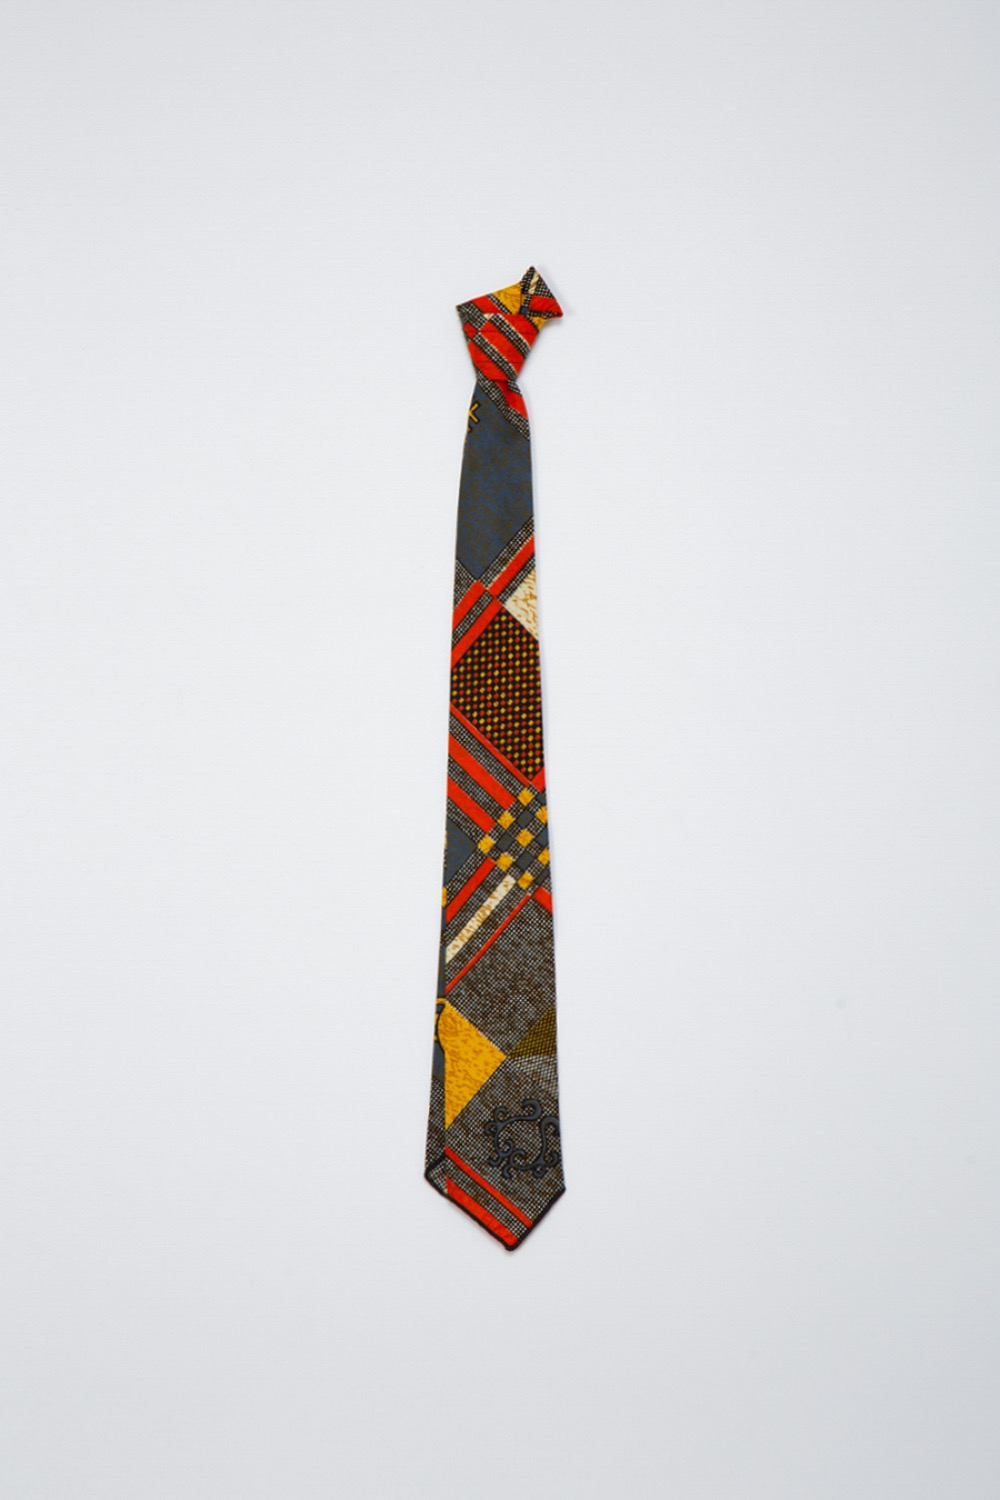 NECK TIE BLACK GOLD COTTON AFRICAN PRINT